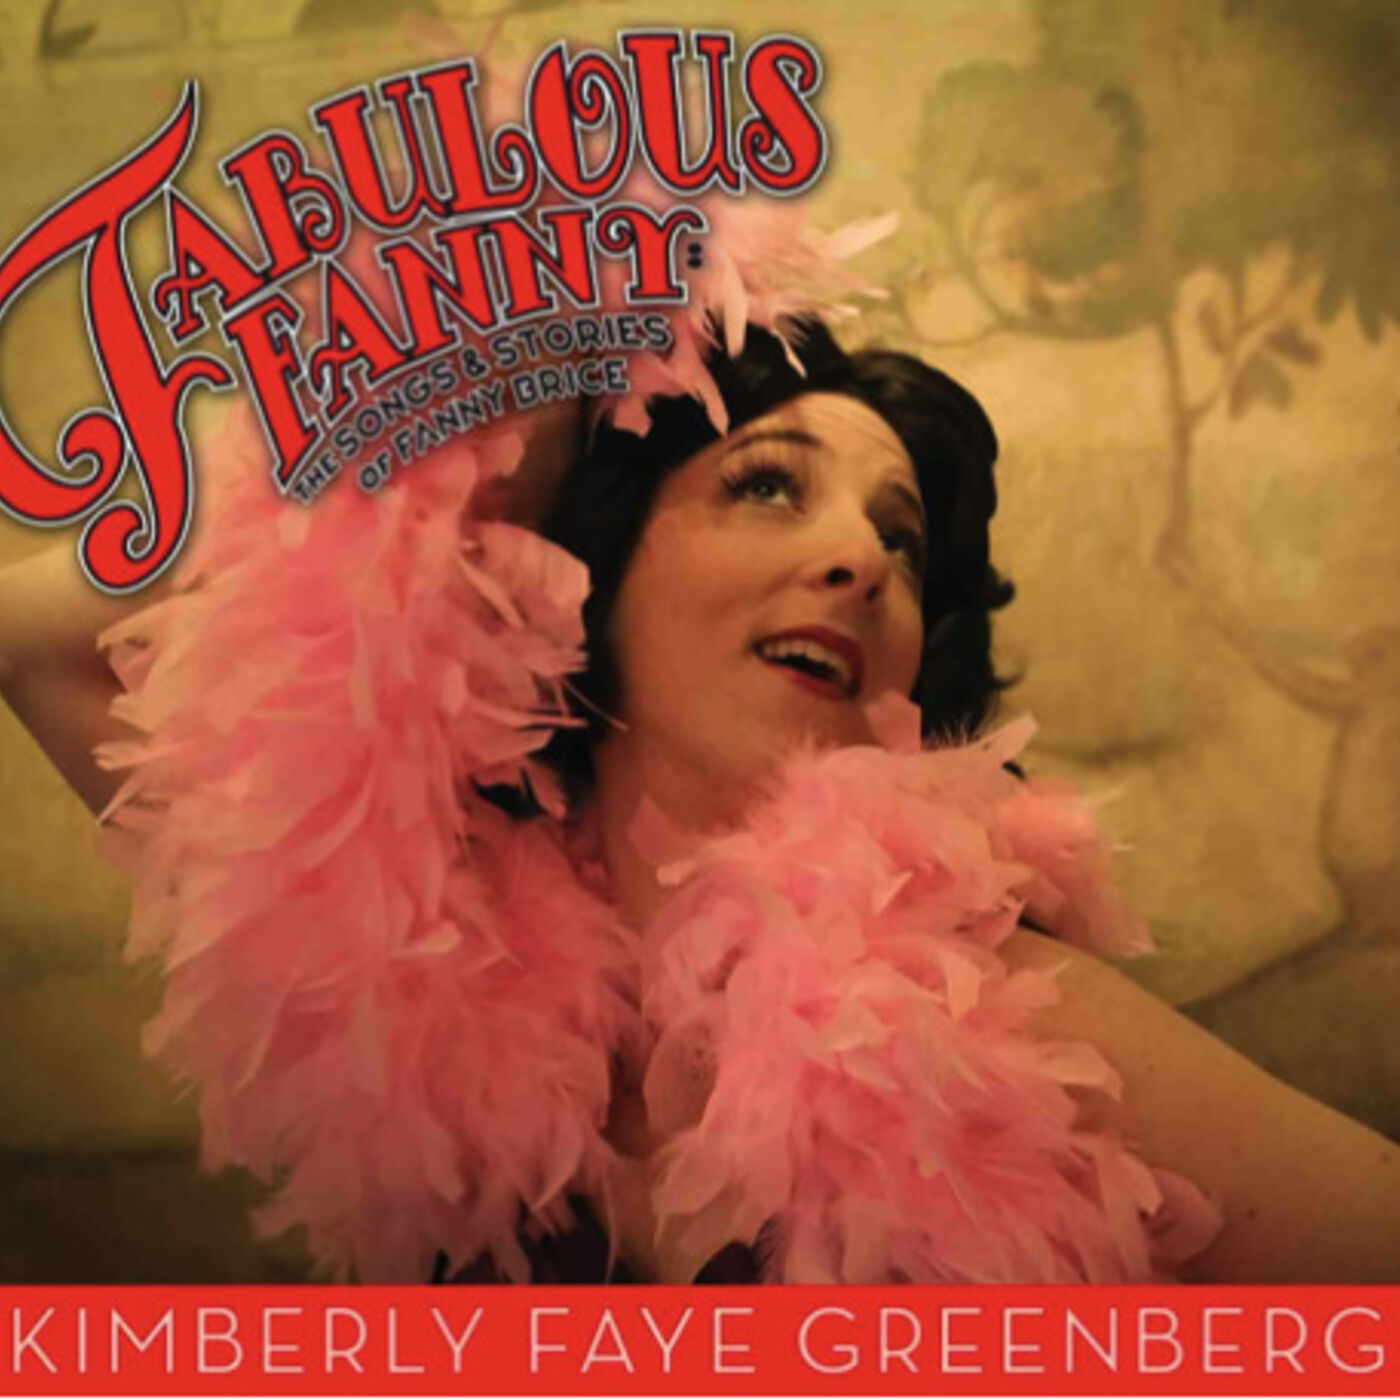 Fabulous Fanny Brice with Kimberly Faye Greenberg